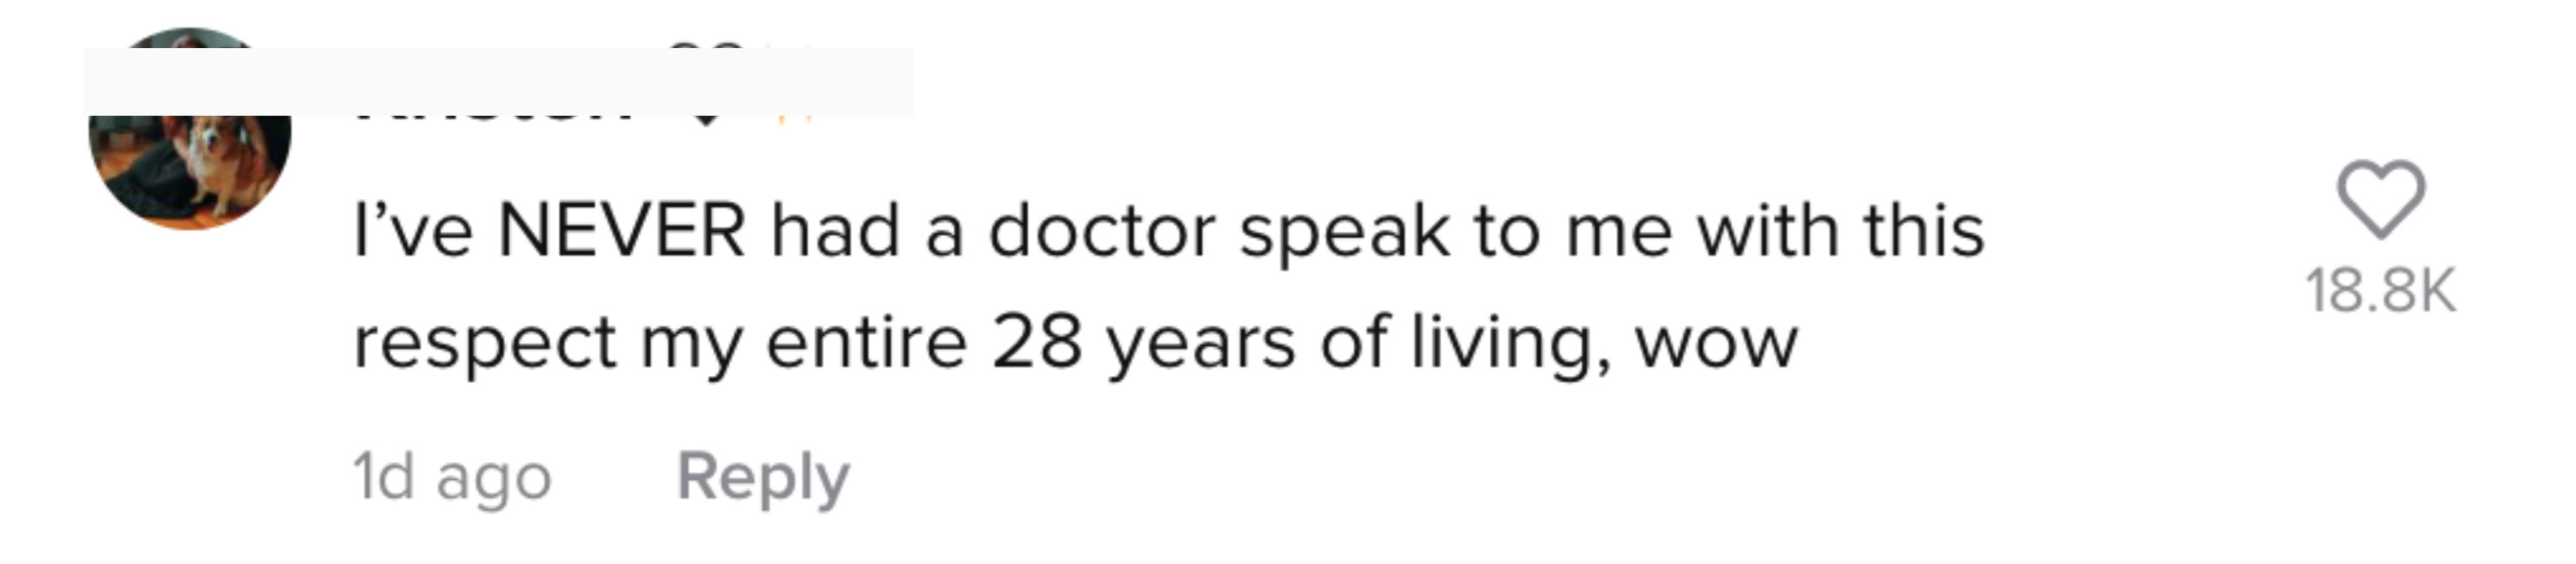 I've NEVER had a doctor speak to me with this respect [in} my entire 28 years of living, wow